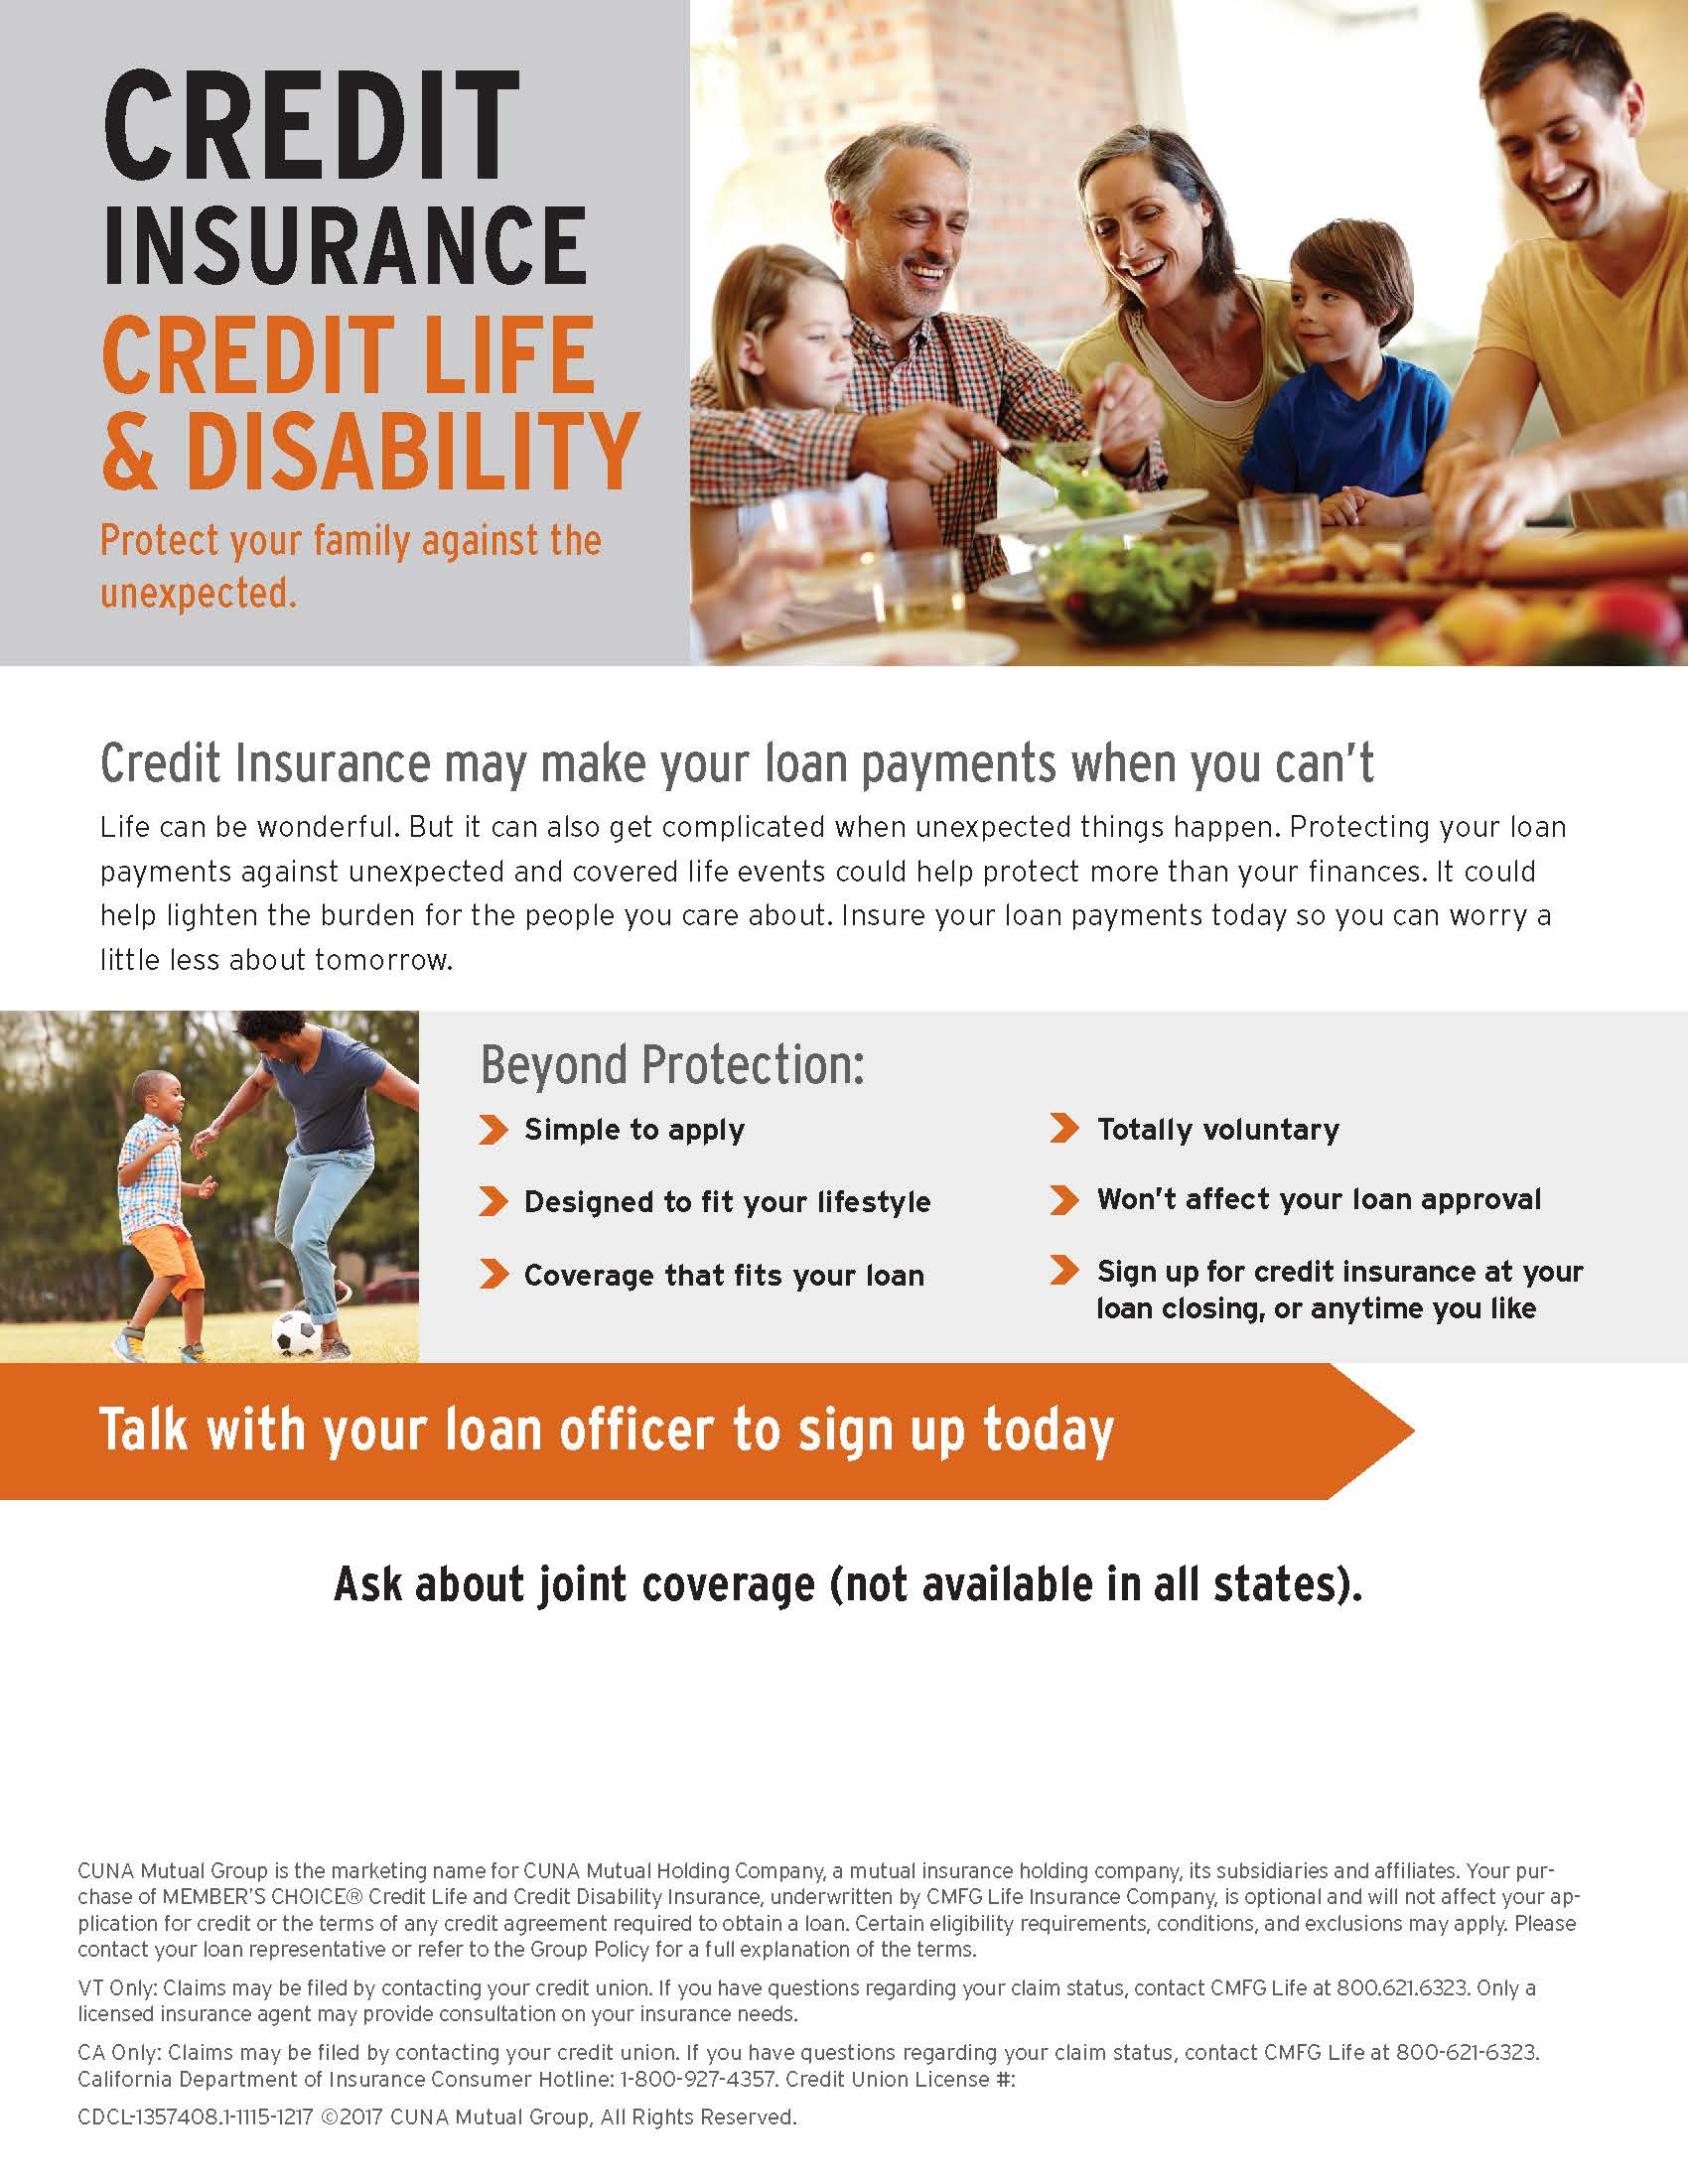 creditisurance-creditlife_disability-brochure